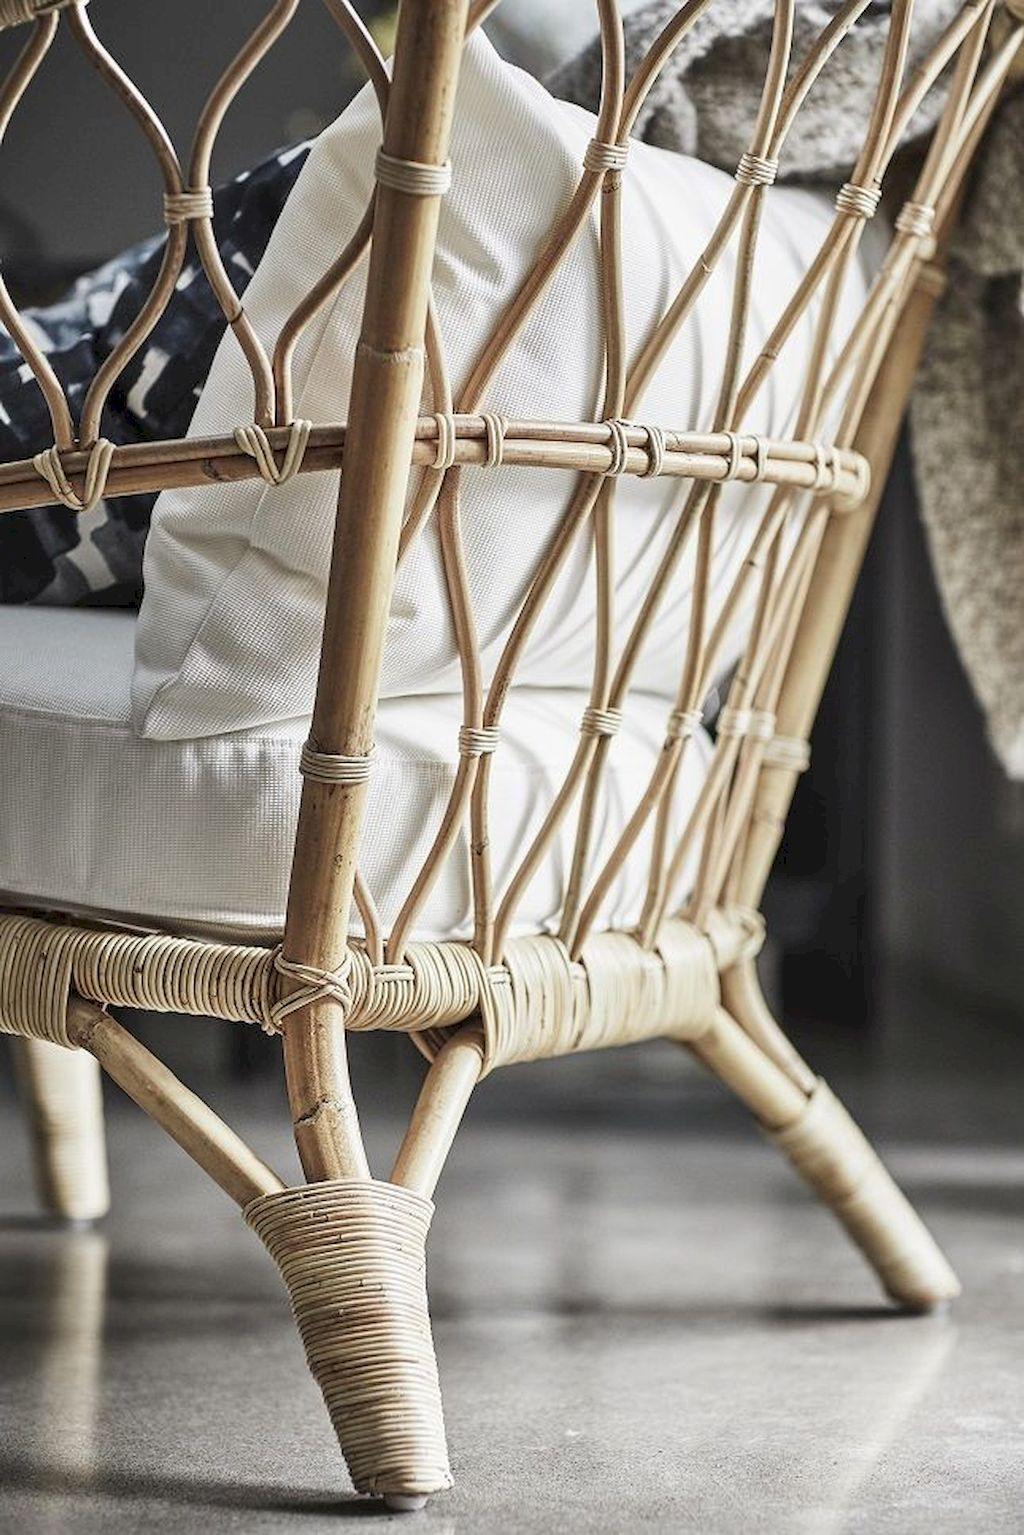 Rattan Furniture040